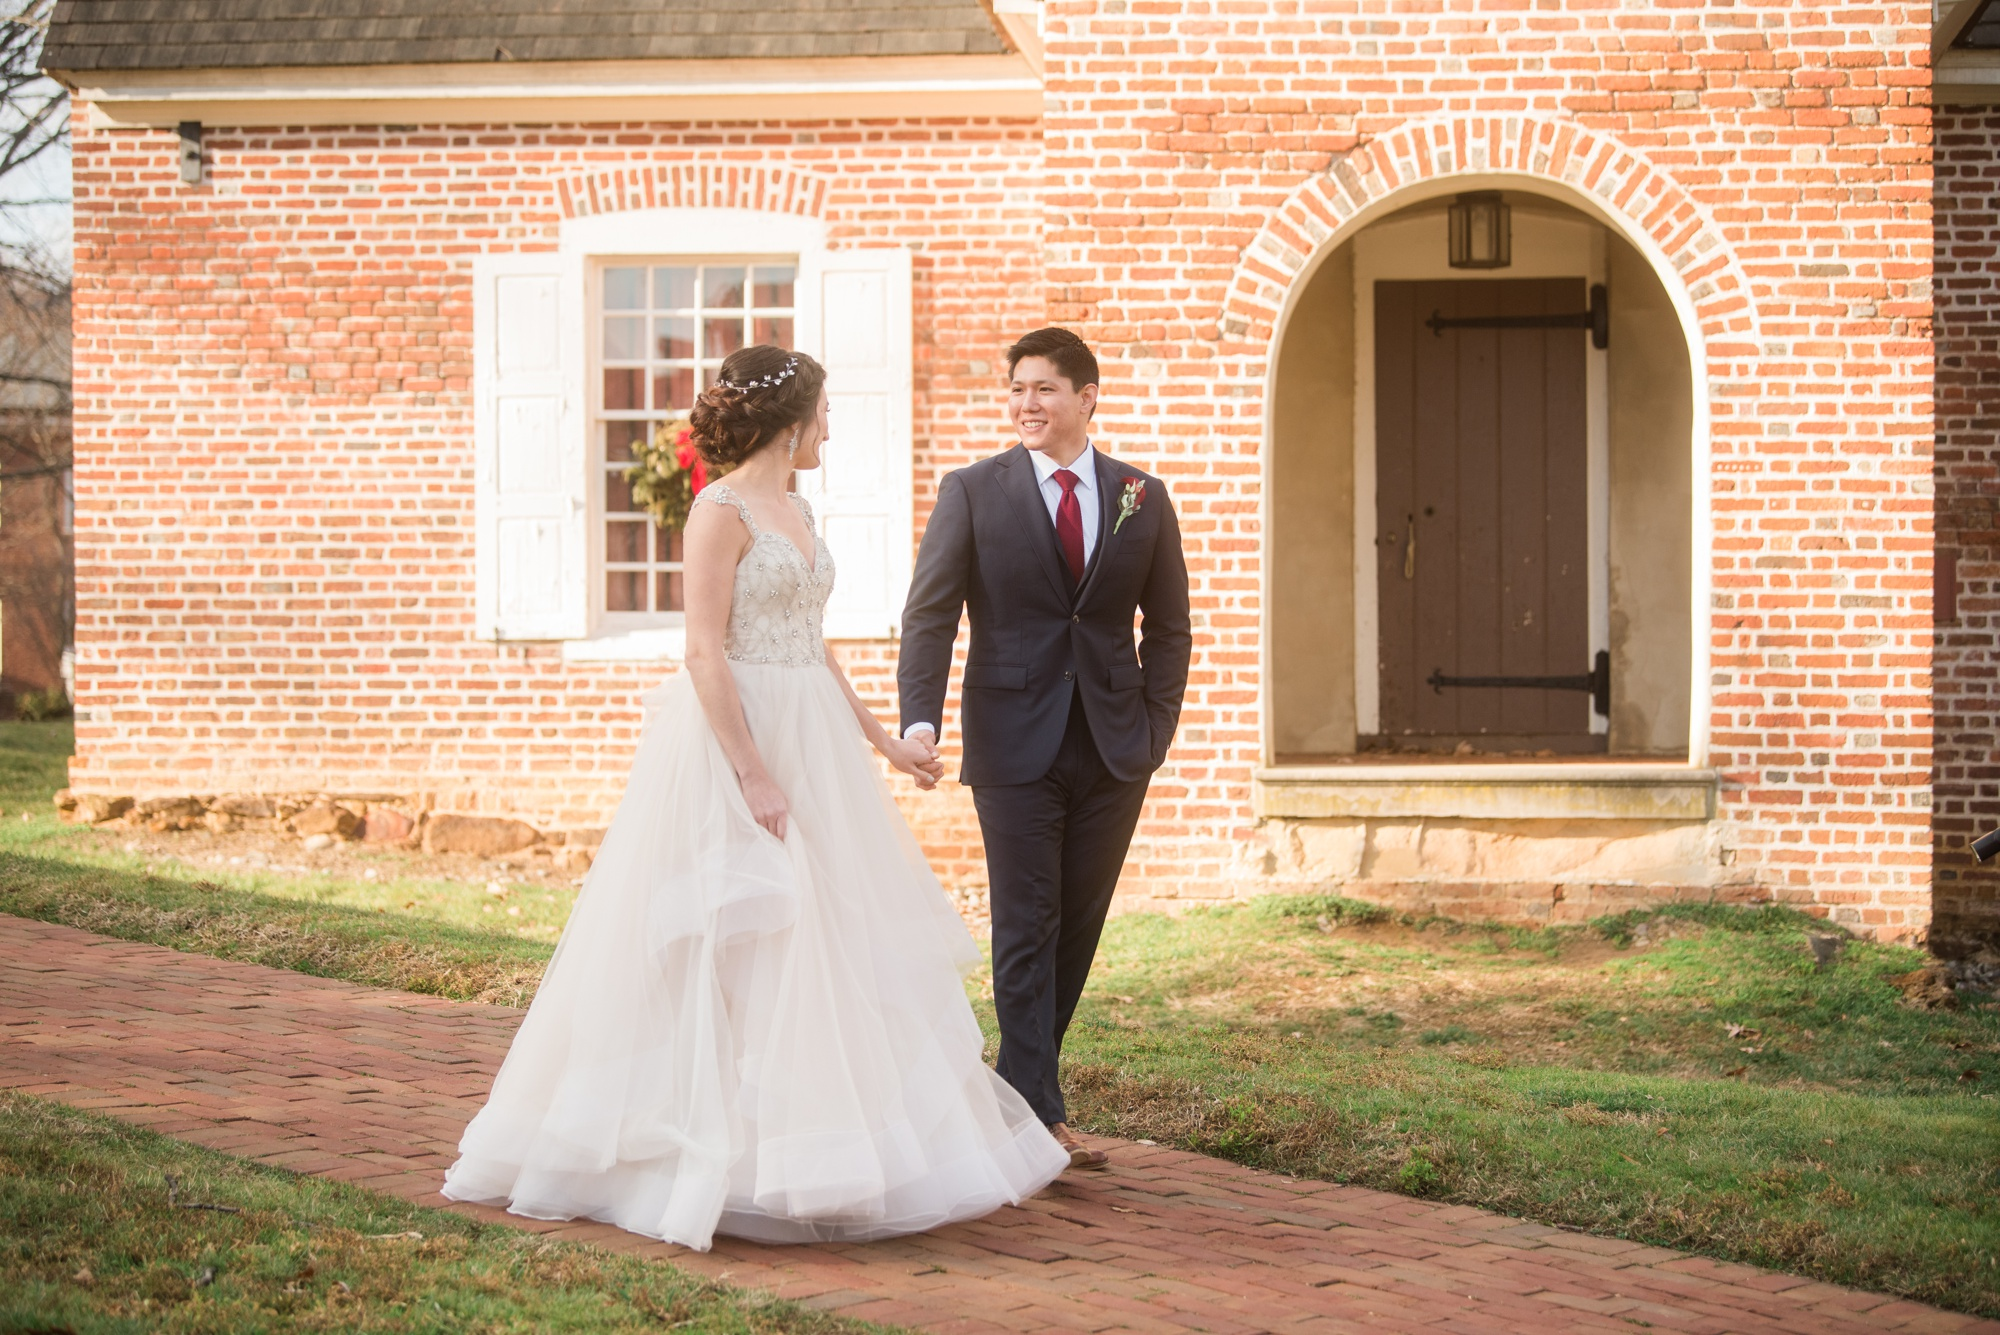 Annapolis wedding couple photos at Maryland State House